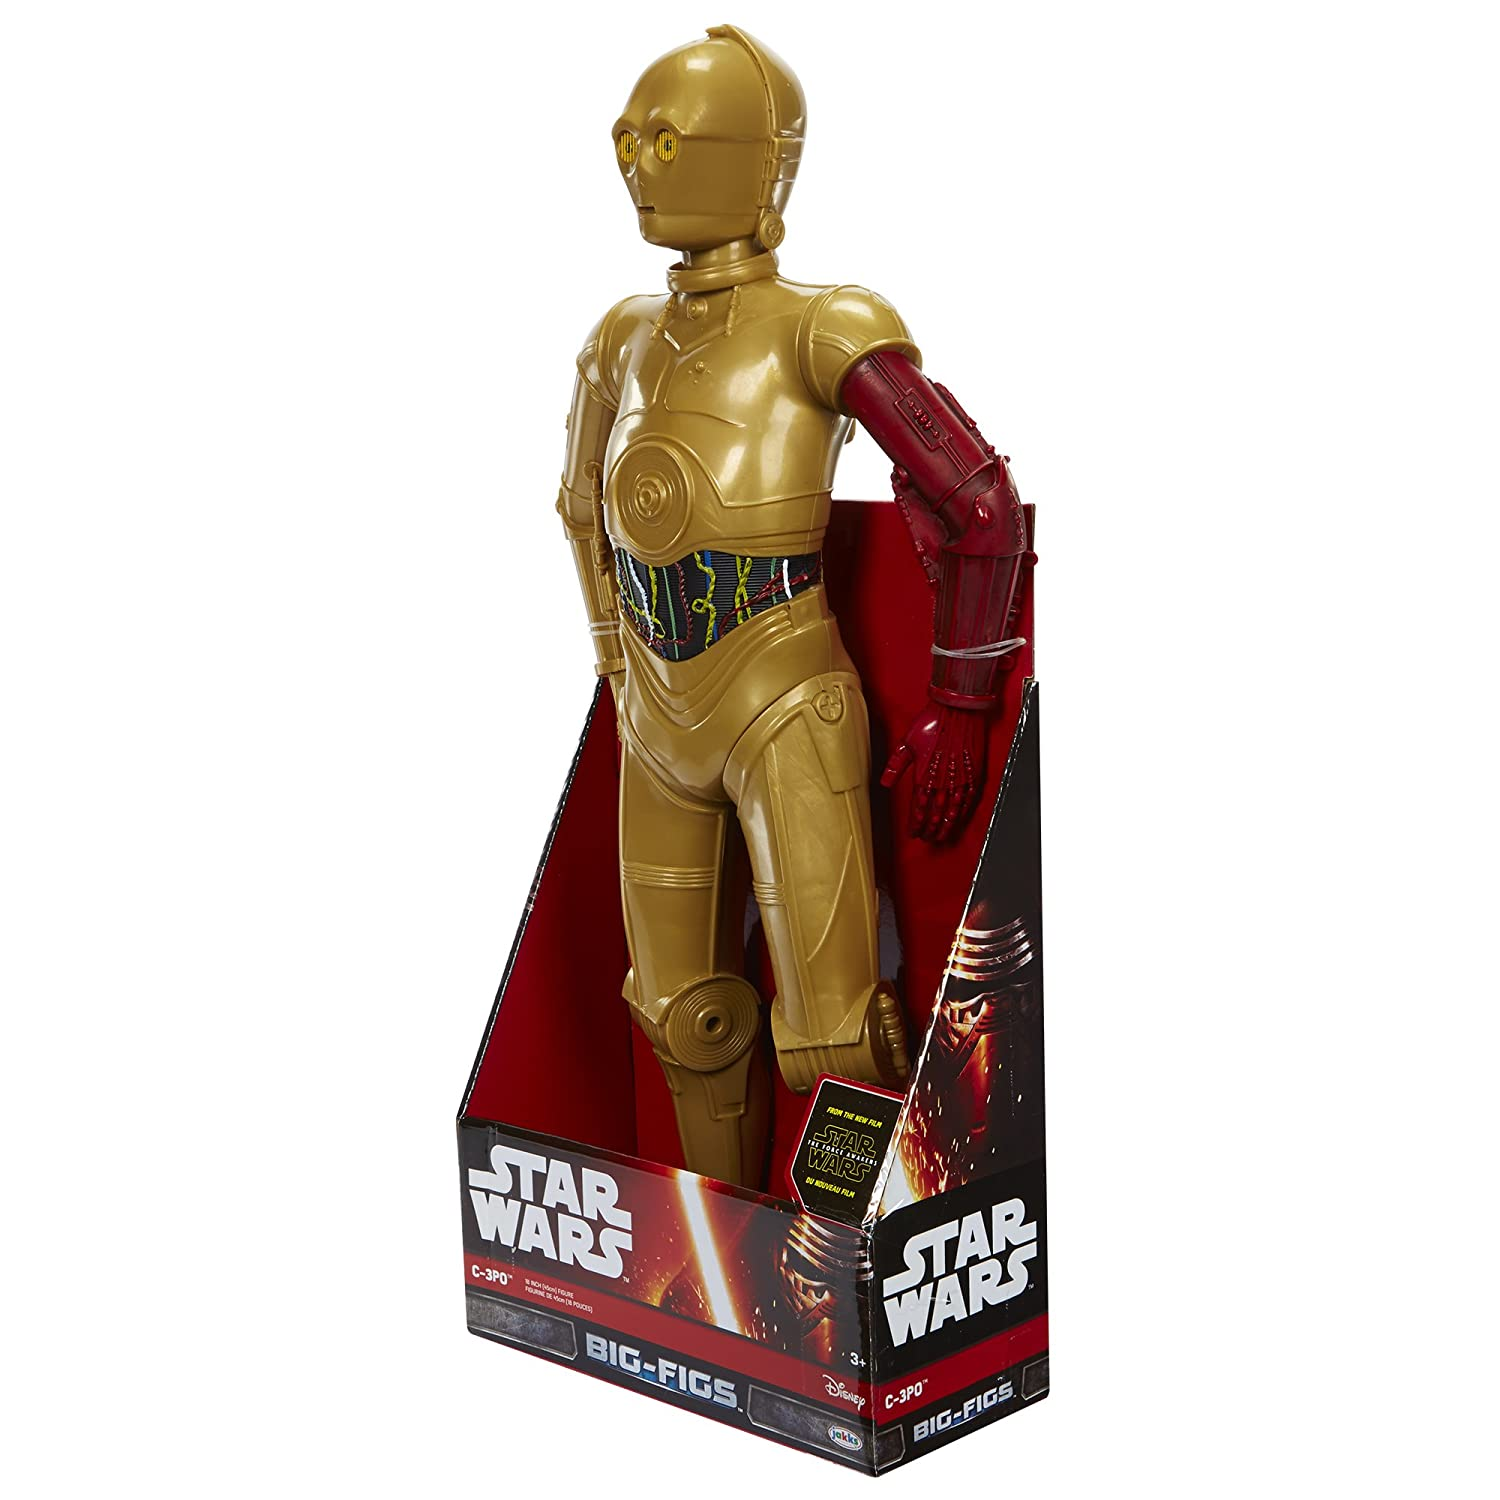 "Jakks Star Wars The Force Awakens Big-Figs C-3PO W// Red Arm 18/"" Action Figure"